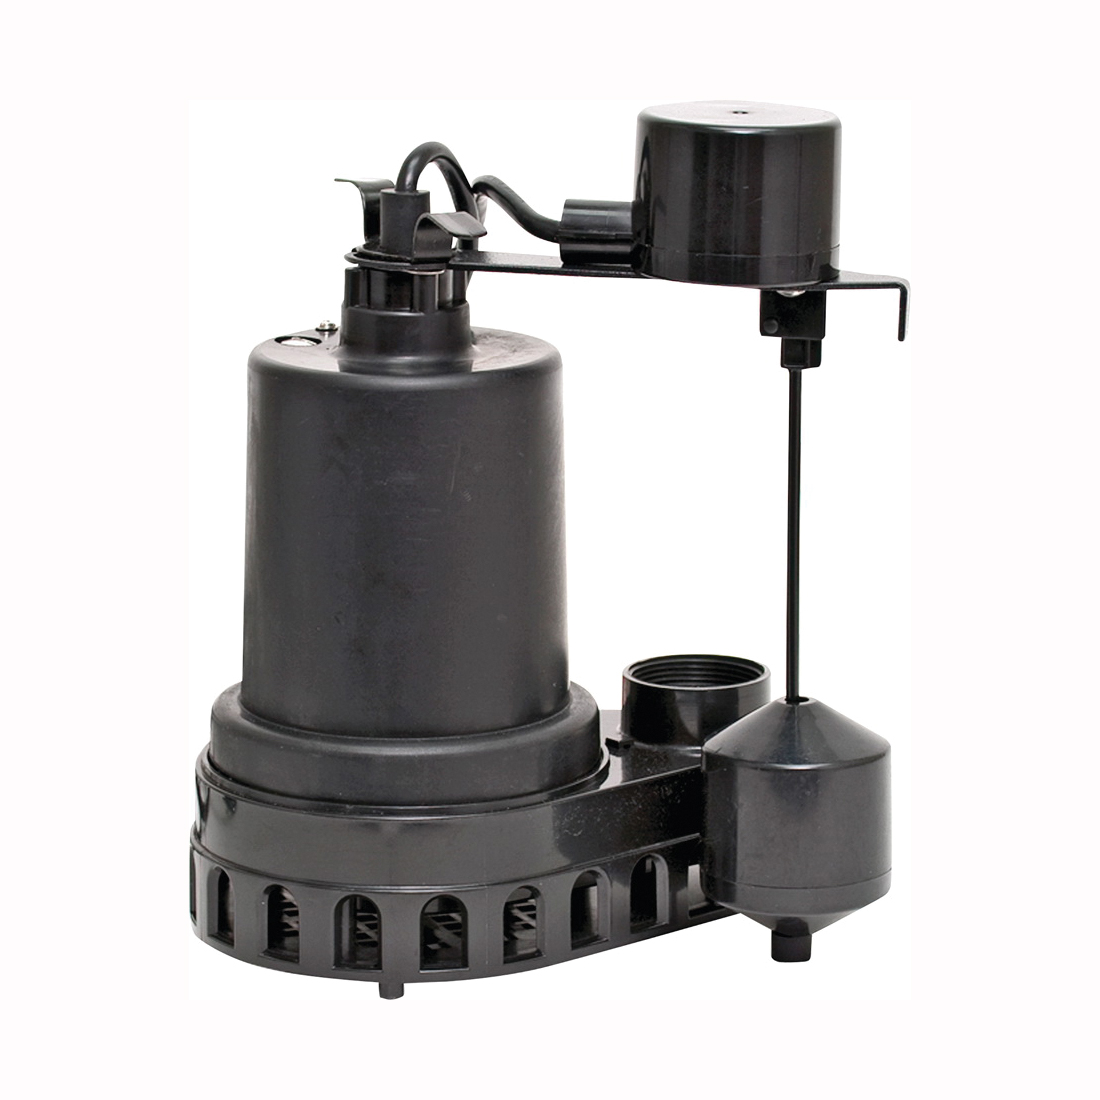 Picture of SUPERIOR PUMP 92372 Sump Pump, 4.1 A, 120 V, 0.33 hp, 1-1/2 in Outlet, 48 gpm, Thermoplastic